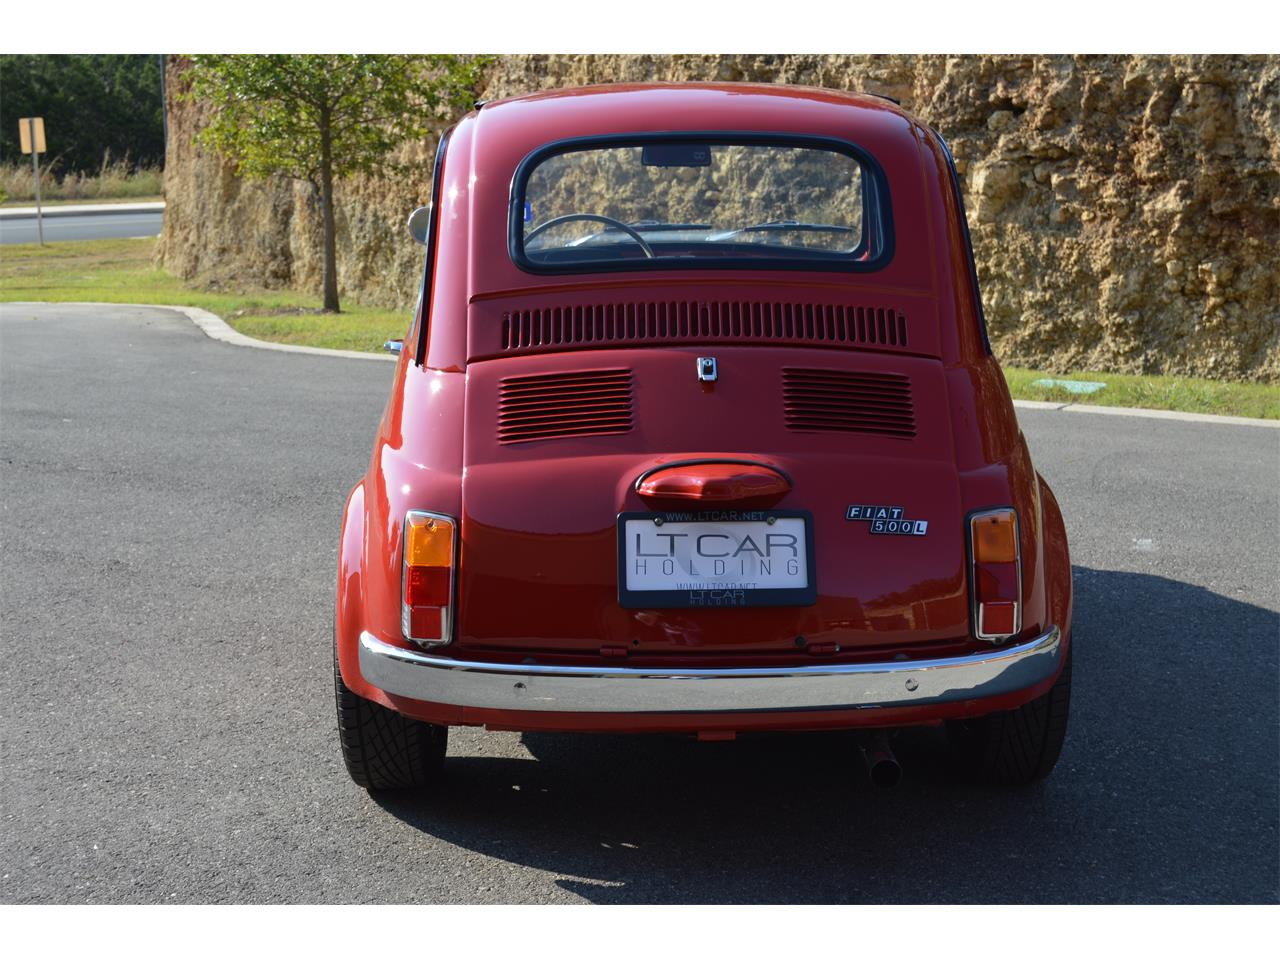 Large Picture of '70 Cinquecento Offered by LT Car Holding - GJO4